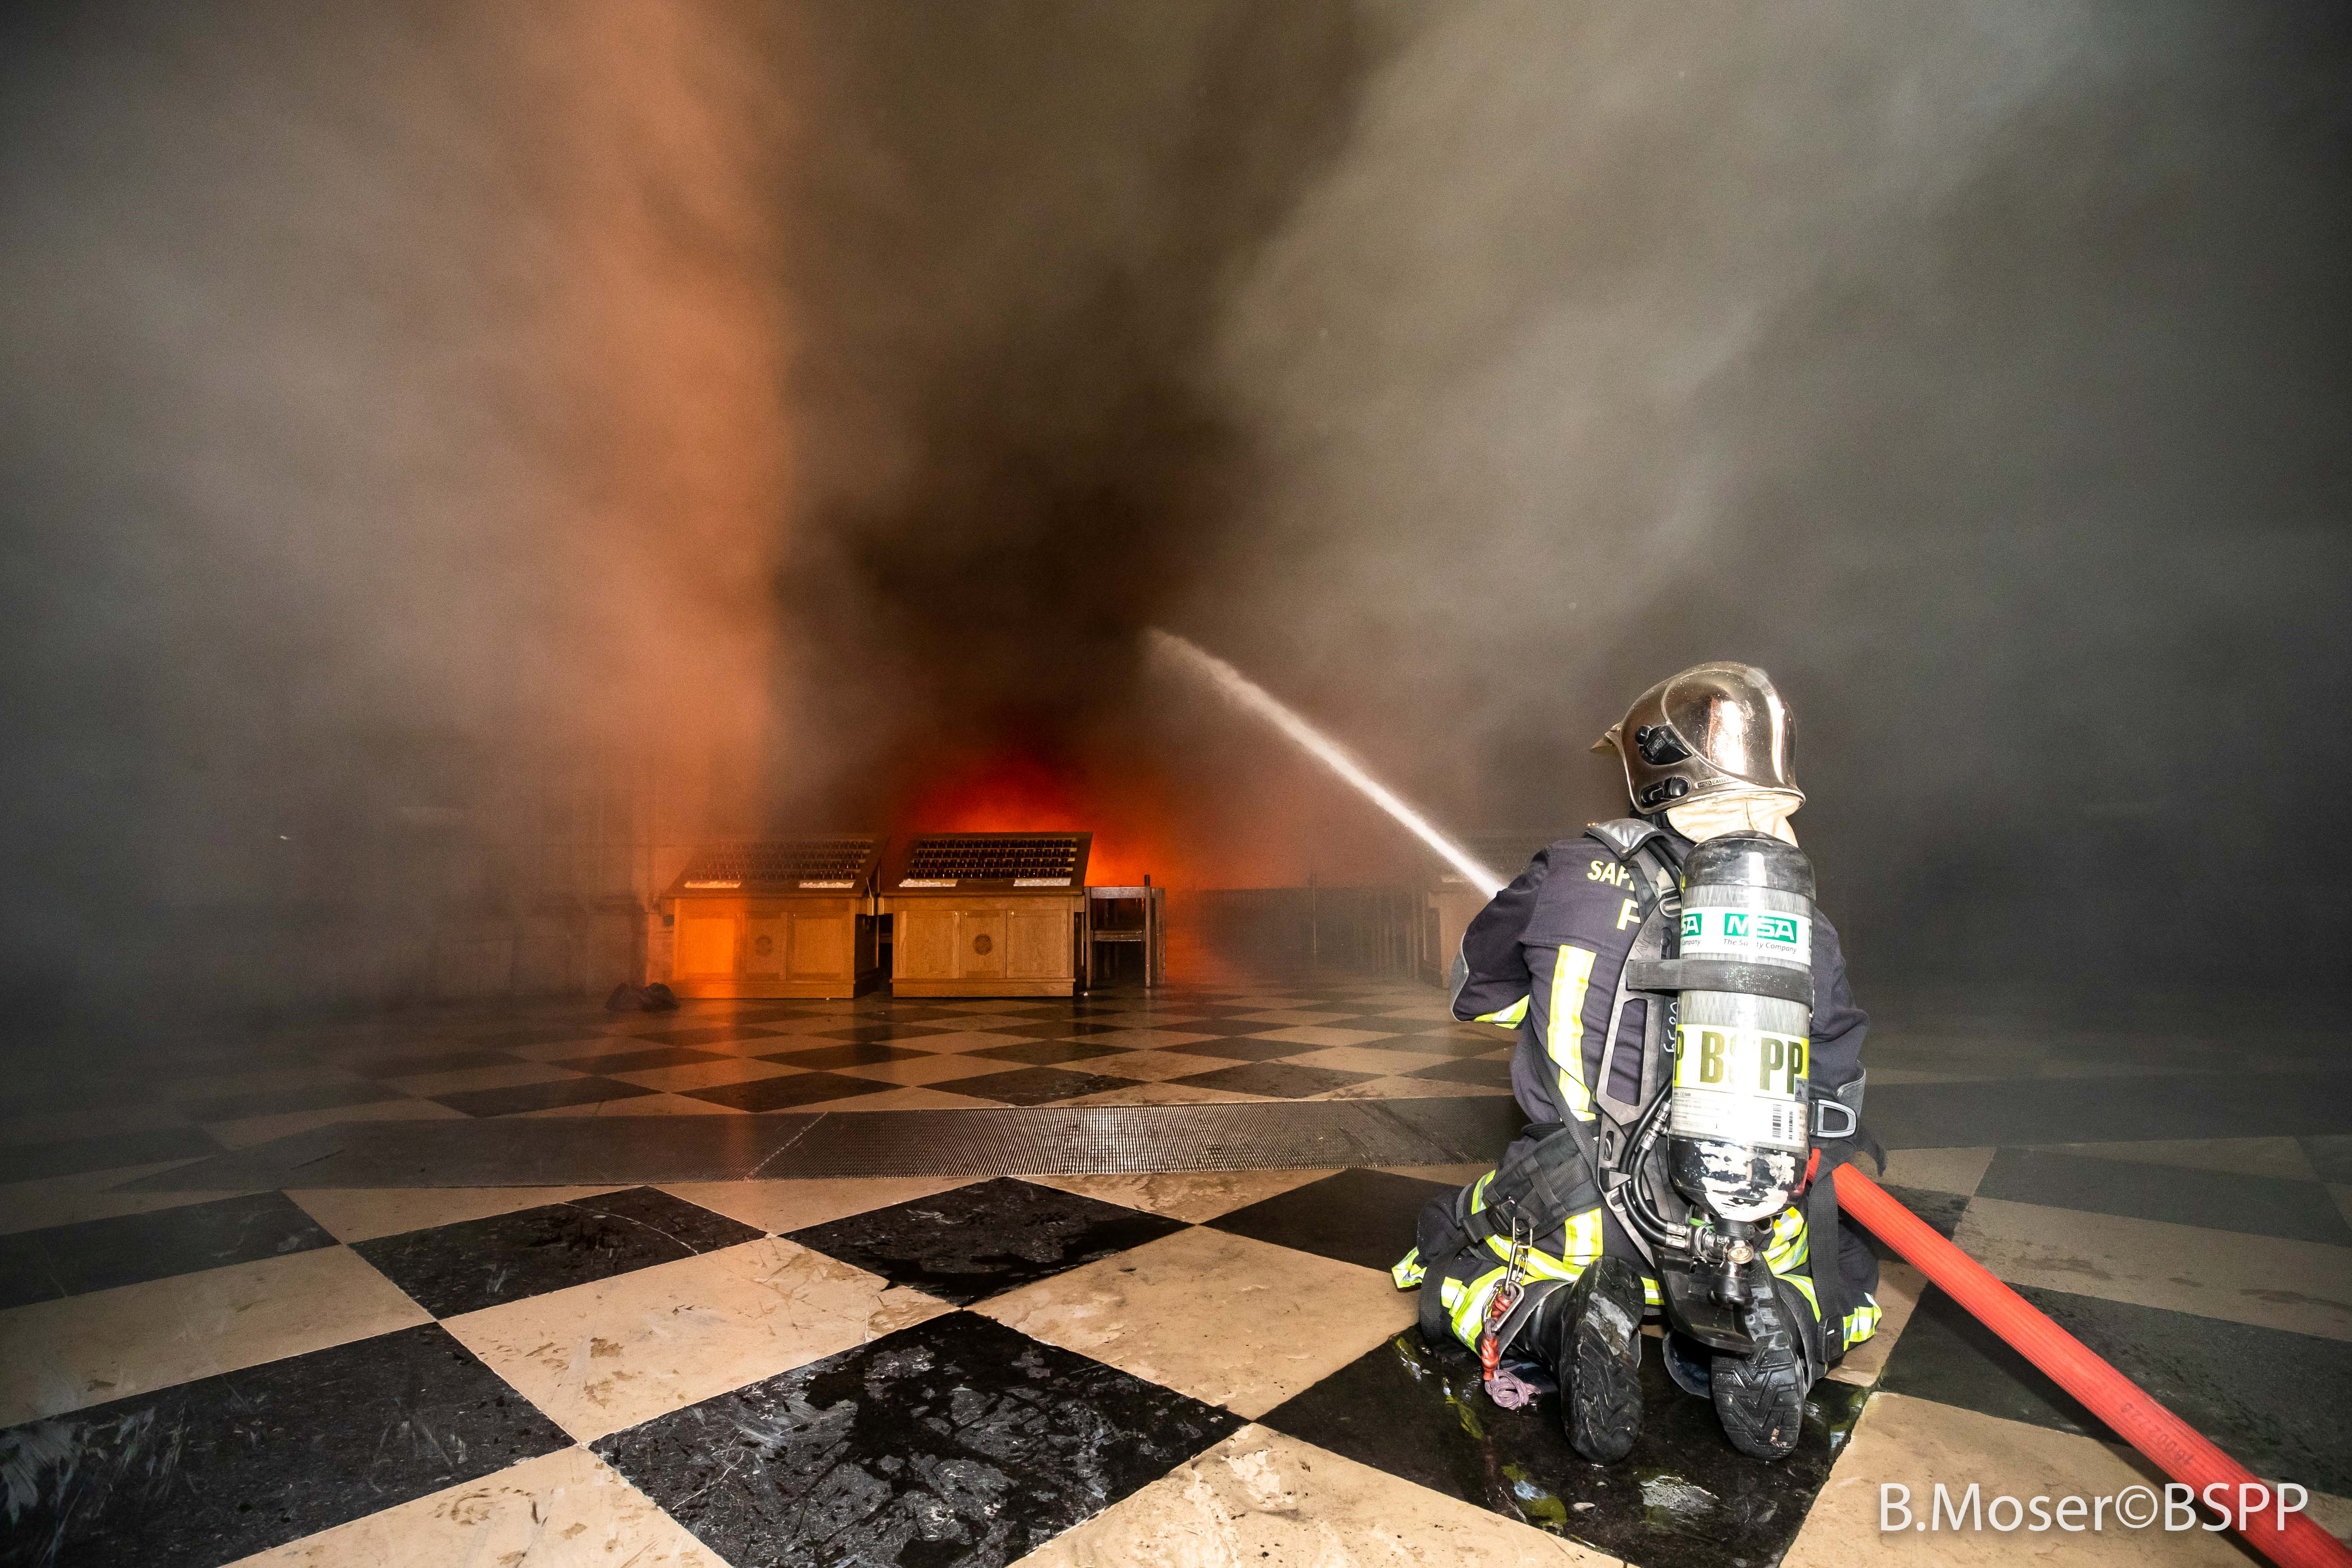 A Paris fire brigade member sprays water on flames inside the Notre Dame-Cathedral, in this image provided by the Paris Fire Brigade, after a fire broke out, in Paris, France, April 15, 2019.